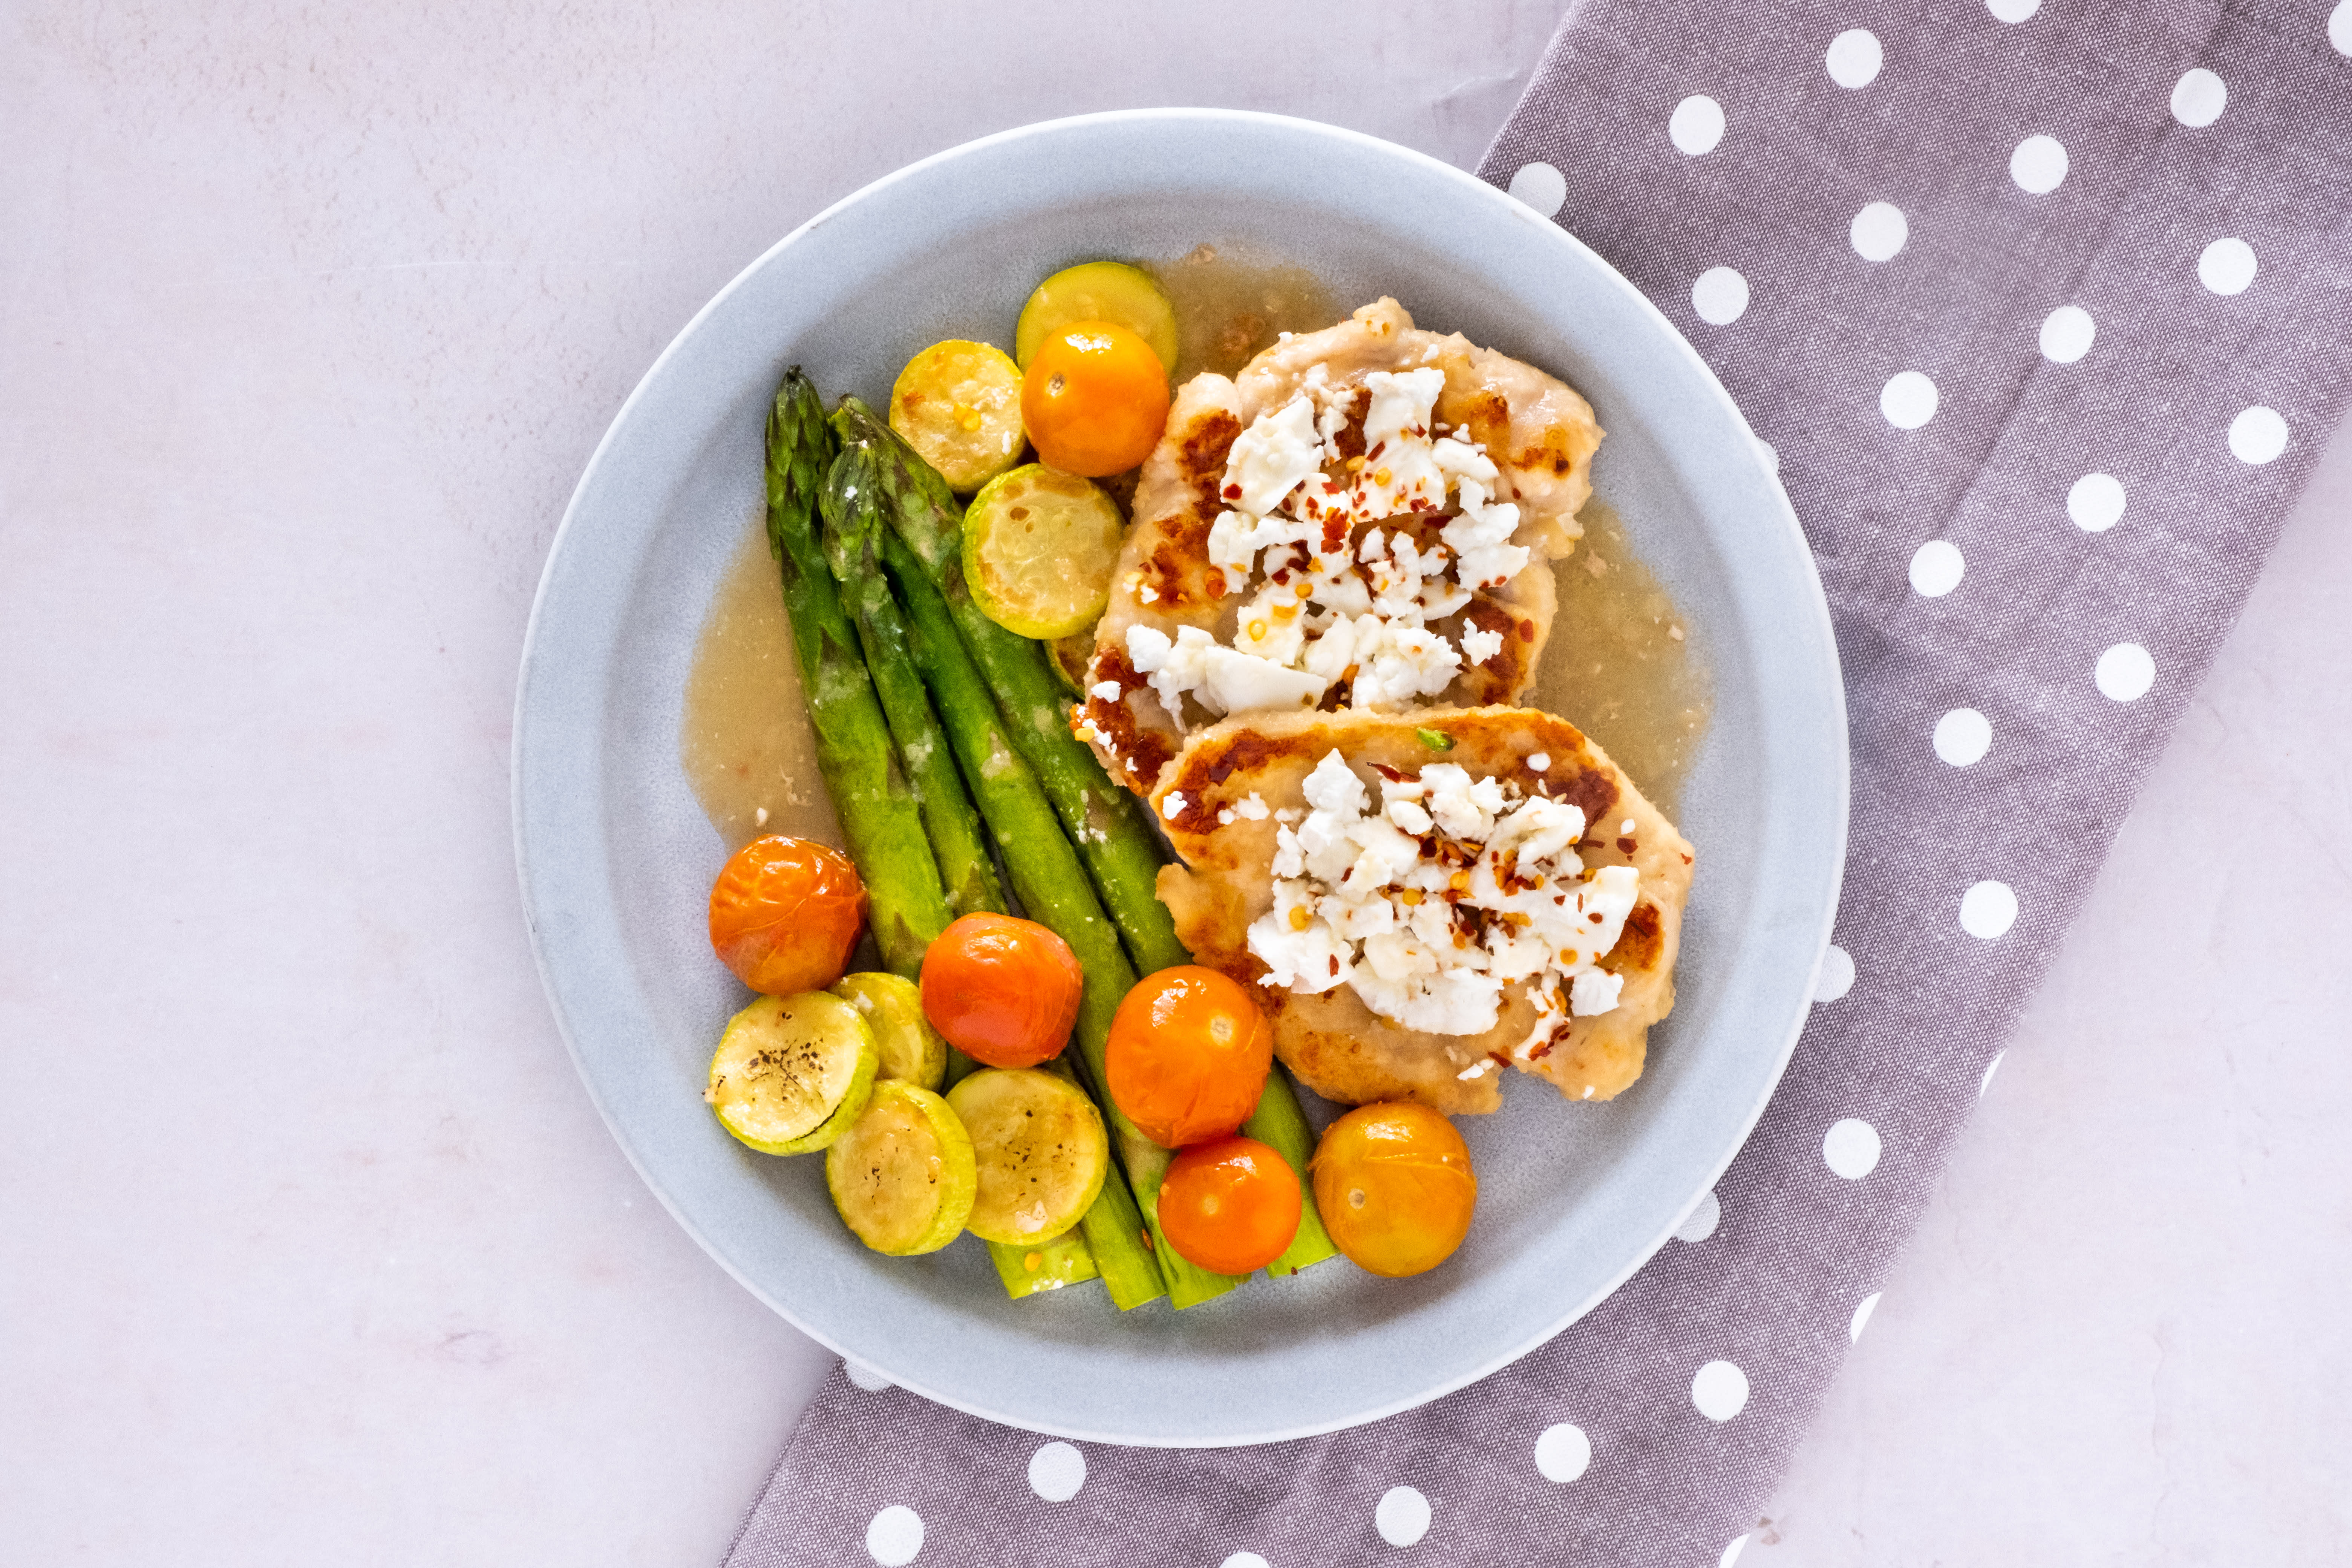 Feta and Chicken One-Pan with Cherry Tomatoes and Asparagus